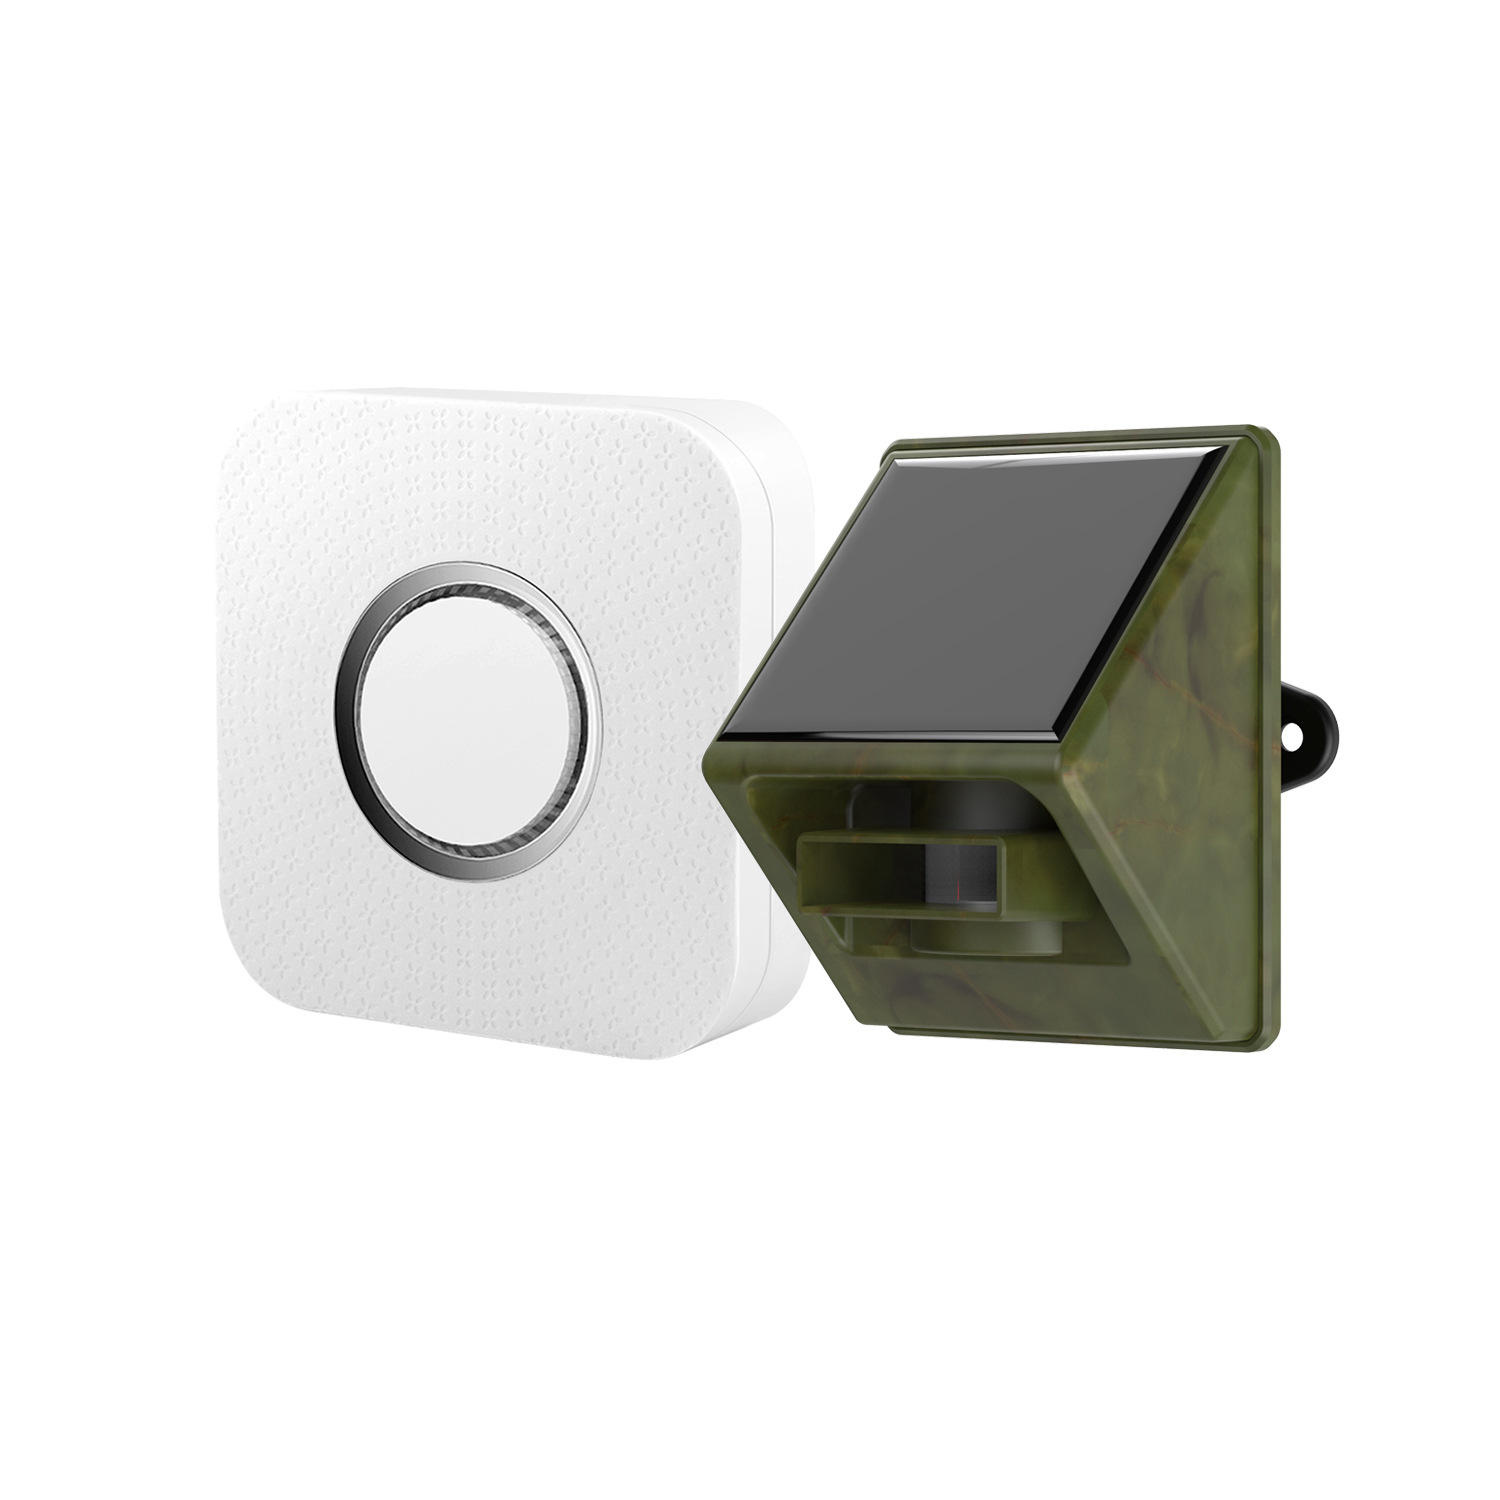 Outdoor Weather Resistant PIR Infrared Motion Sensor with Door Chime, Solar Wireless Driveway Alarm